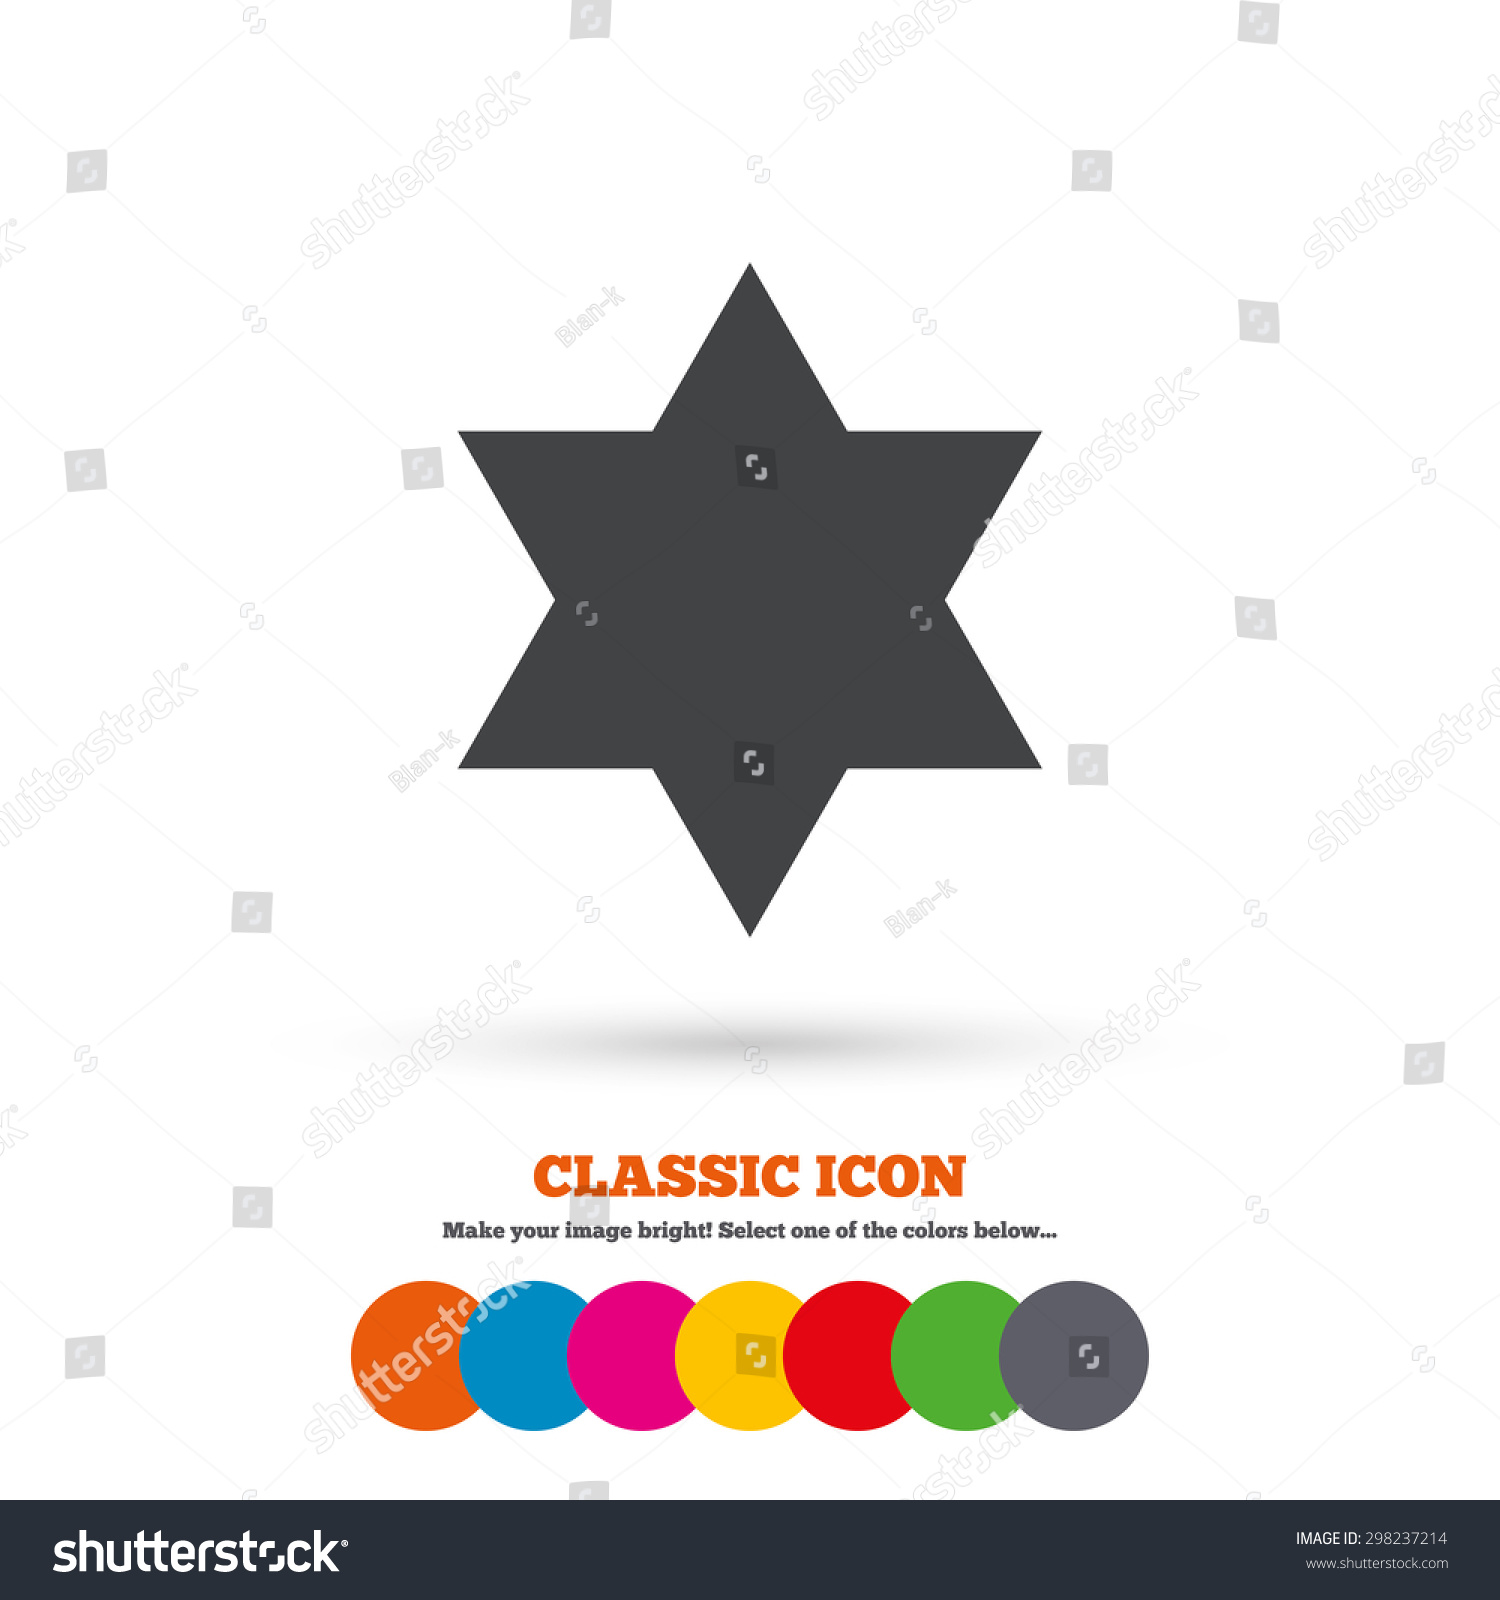 Famous jewish star template pictures inspiration example resume jewish star keyboard symbol choice image symbol and sign ideas biocorpaavc